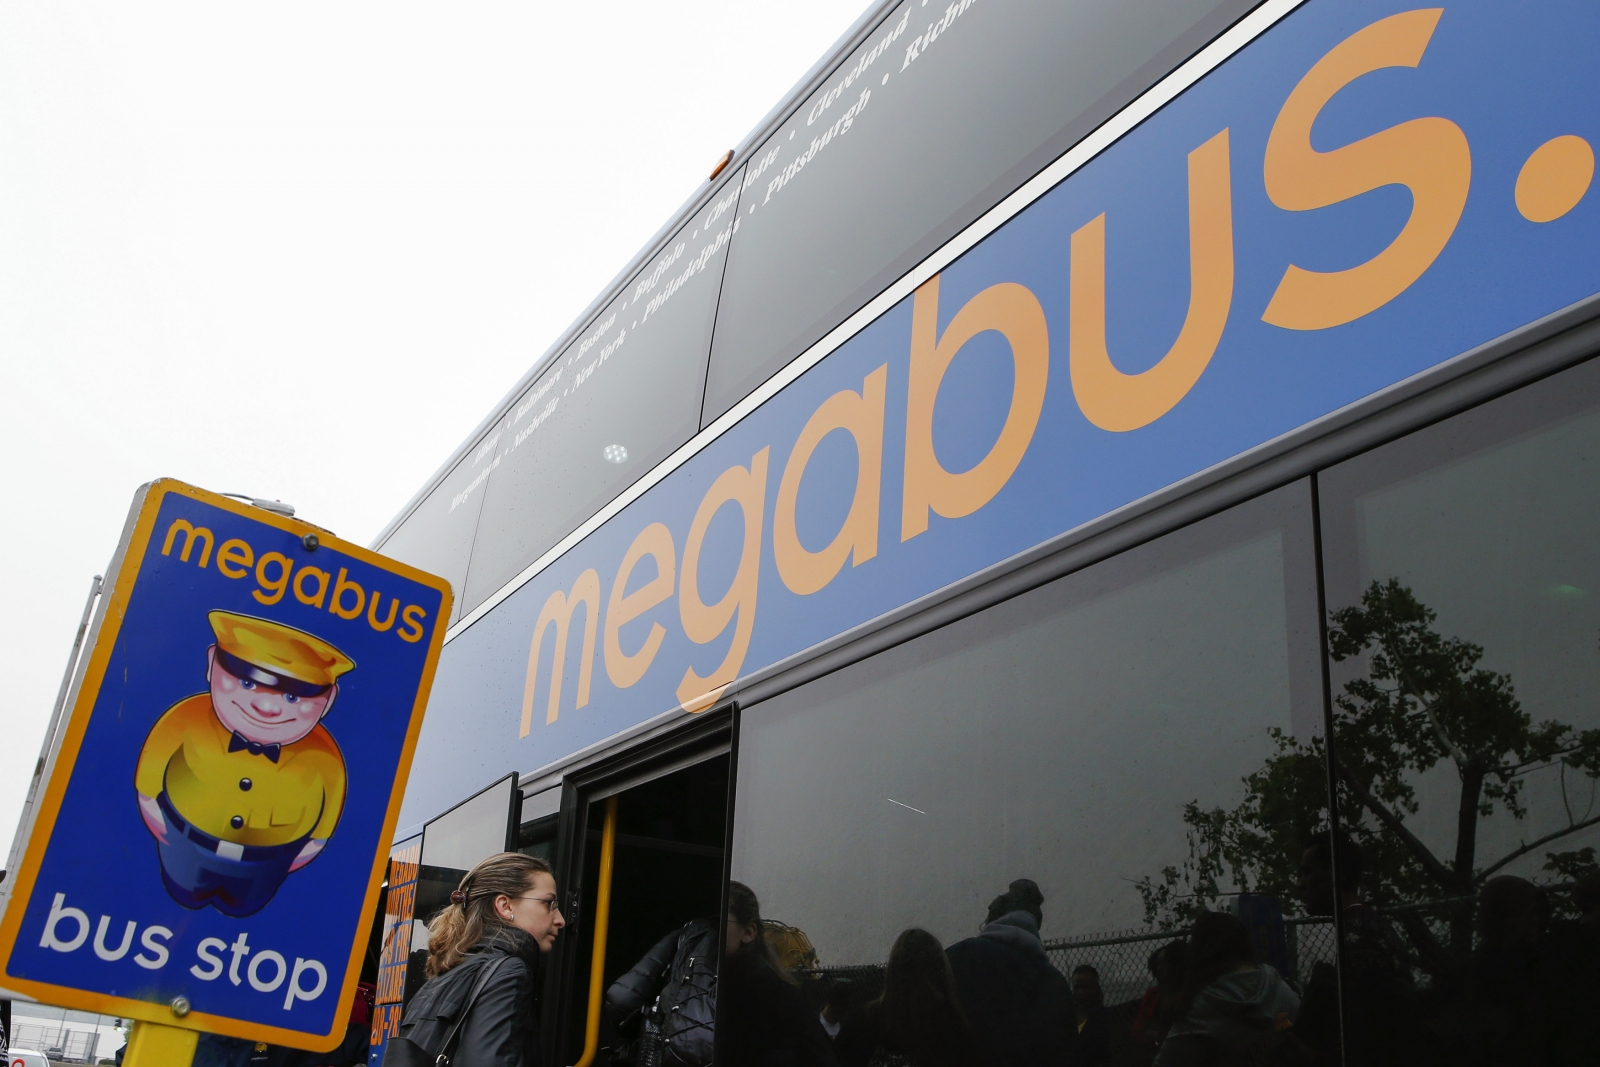 Megabus, owned by Stagecoach